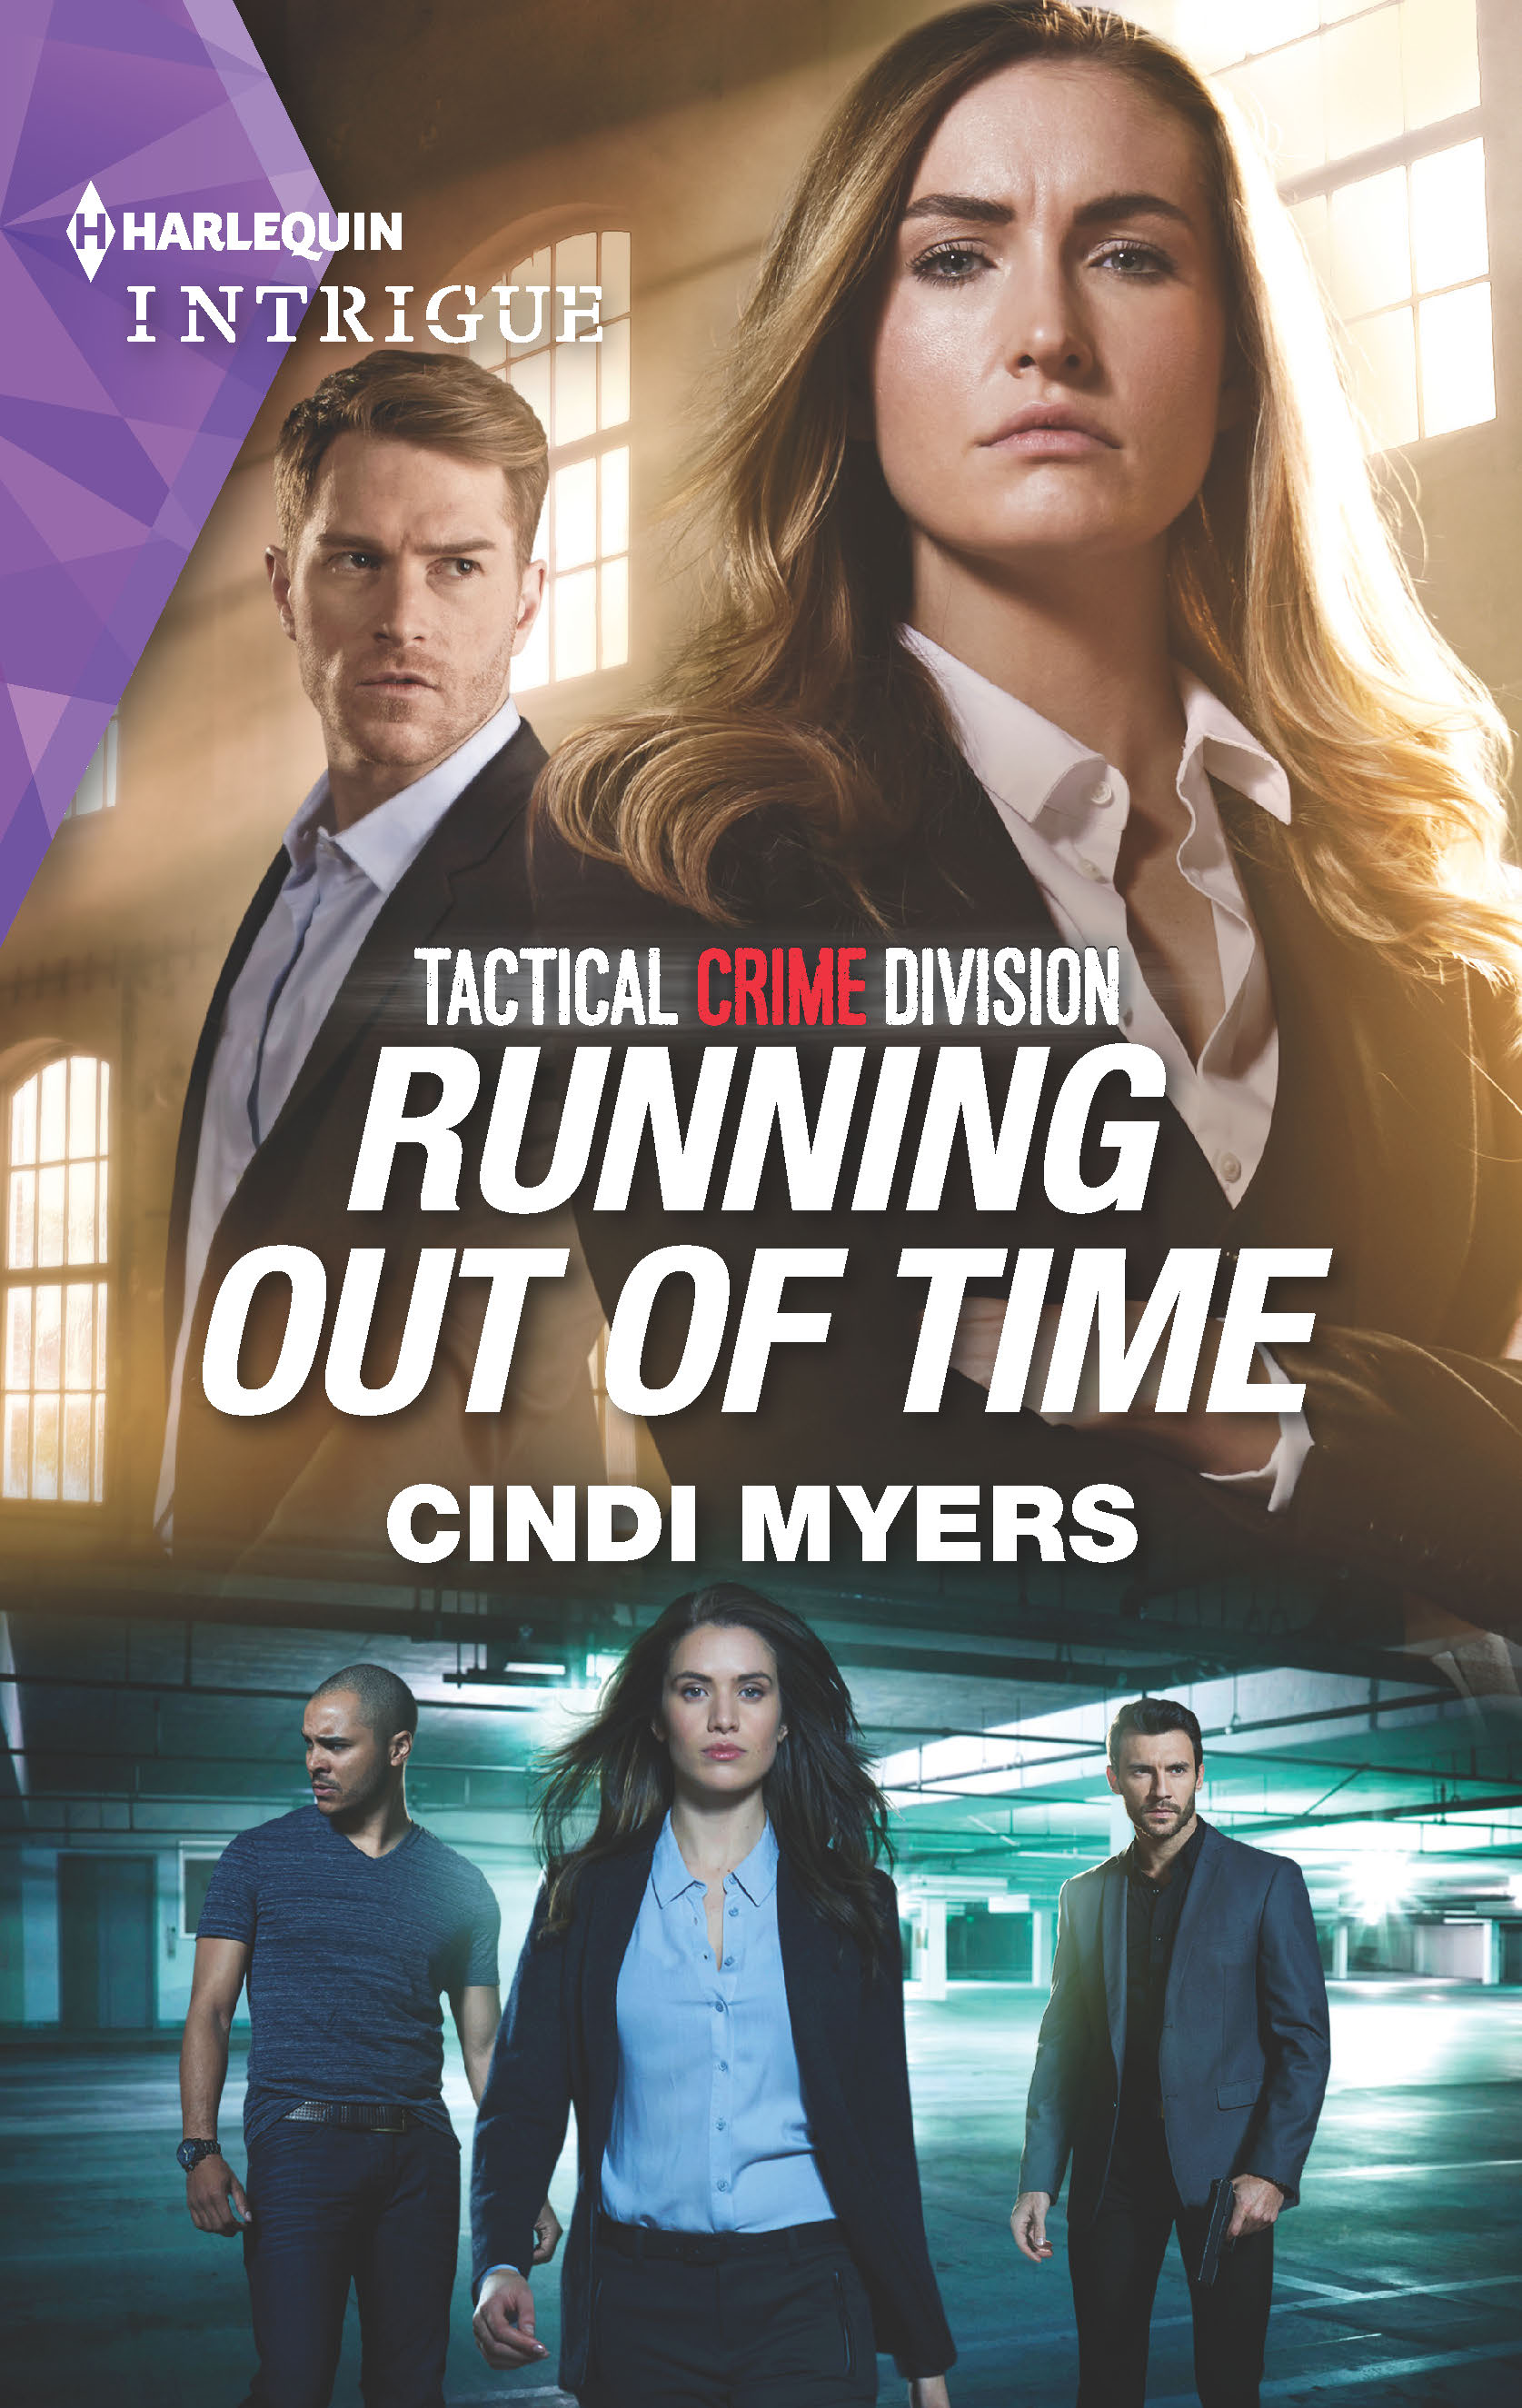 Book 4_Running Out of Time_Cindi Myers